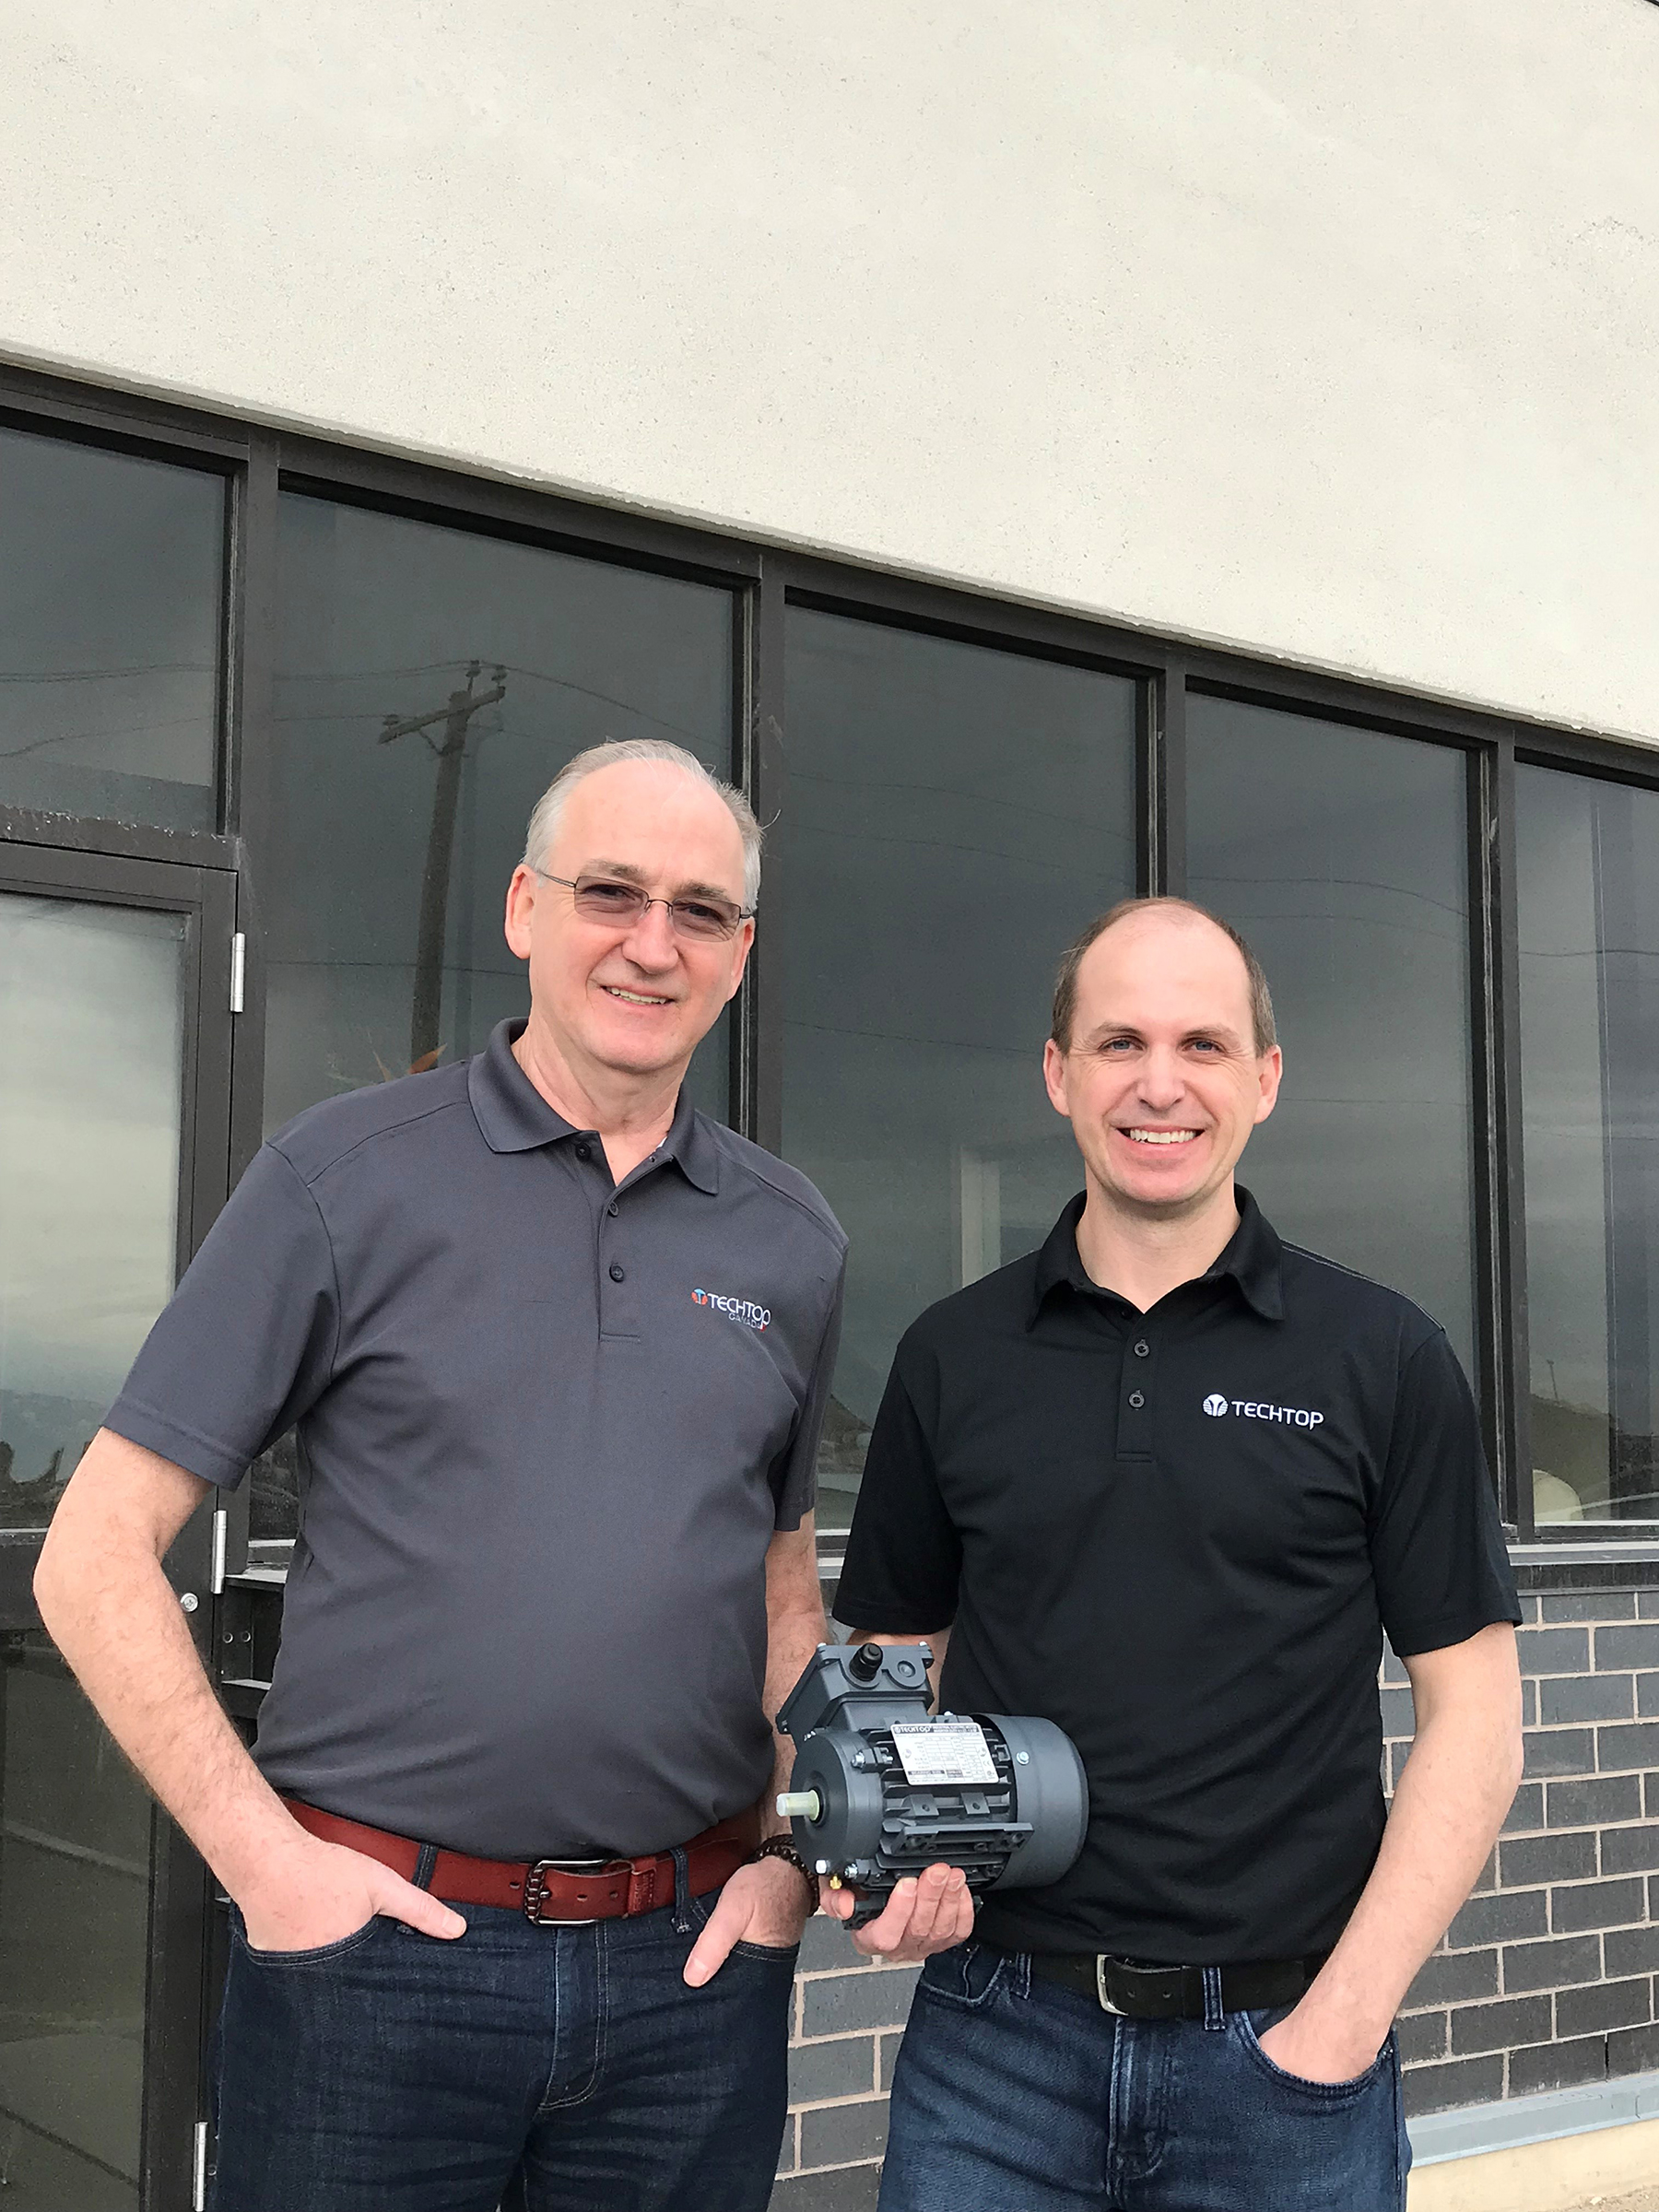 Ontario-based engine distributor adds satellite office in CentrePort